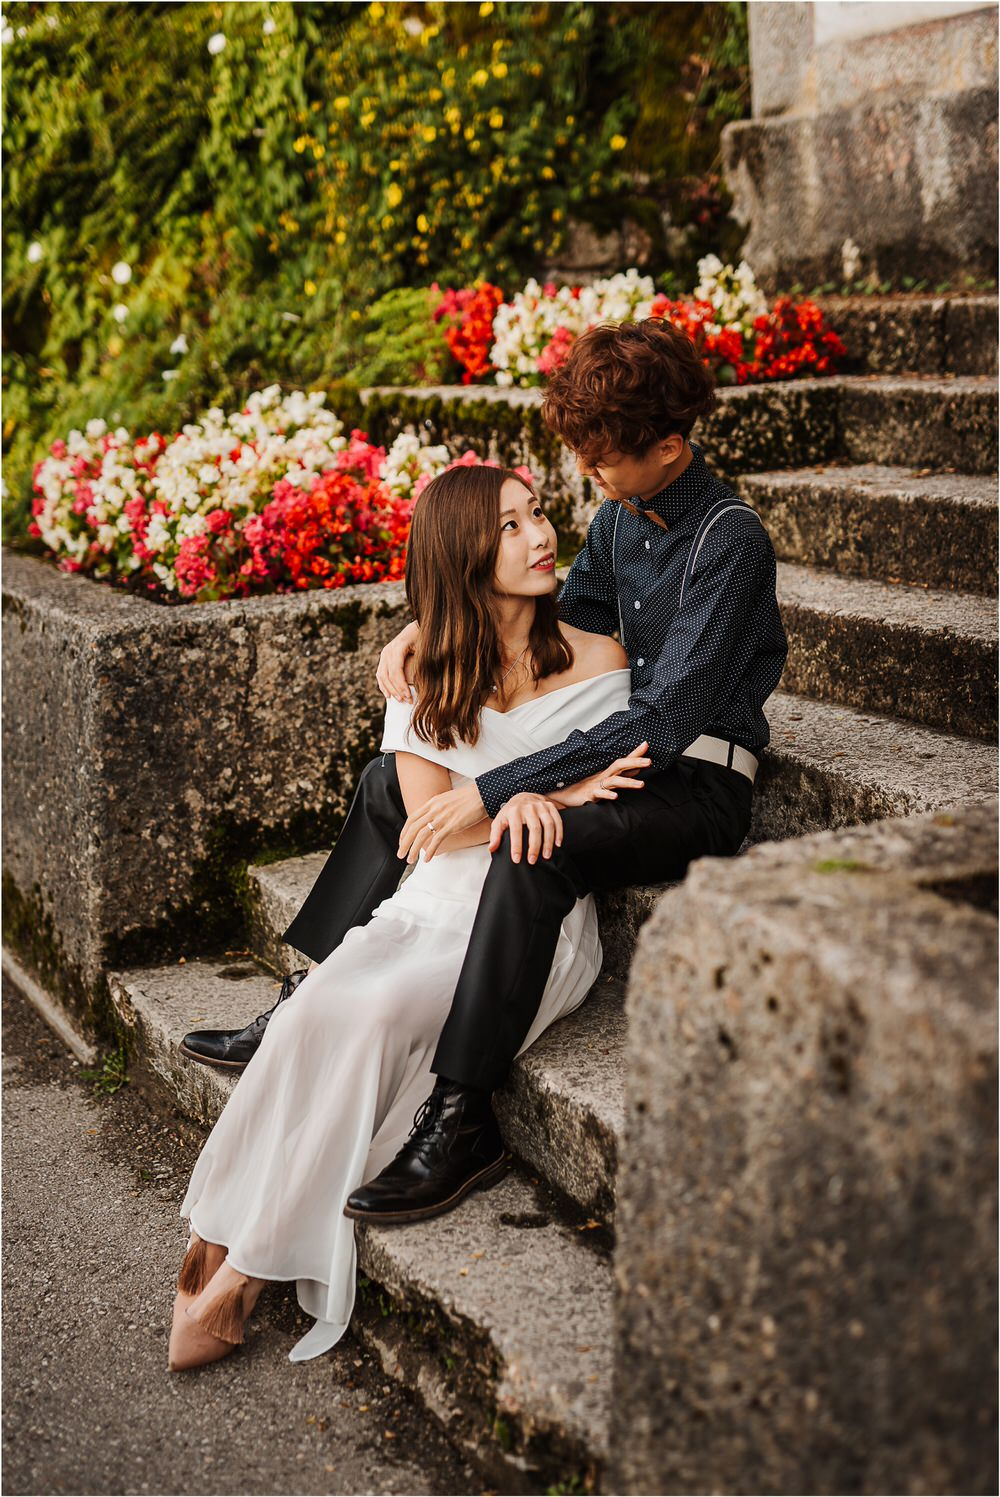 hallstatt austria wedding engagement photographer asian proposal surprise photography recommended nature professional 0032.jpg